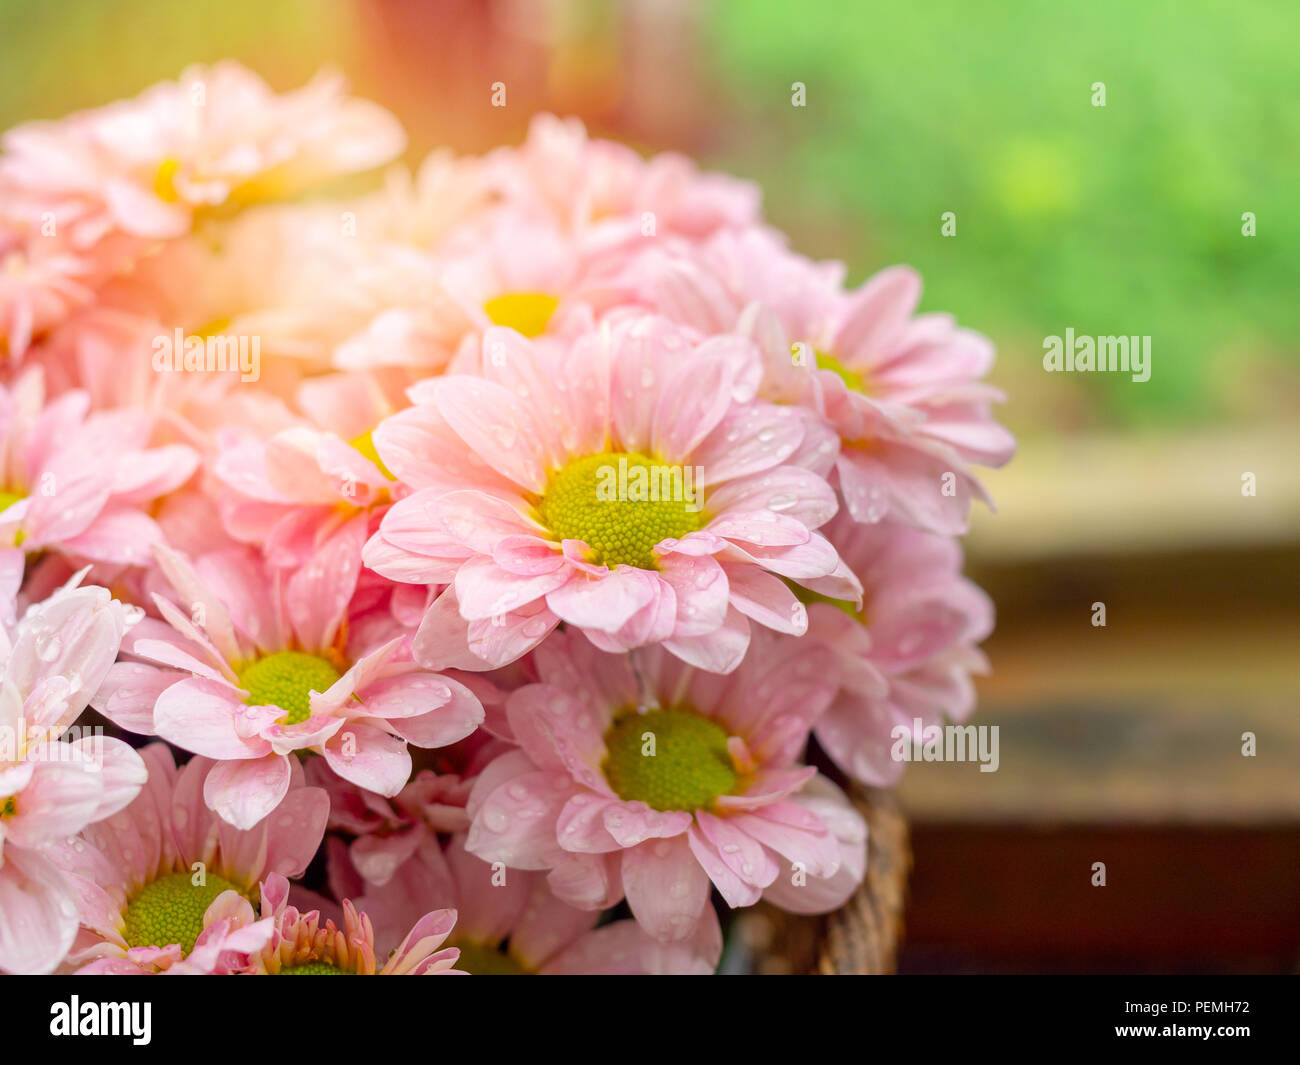 Beautiful Blooming Pink And Yellow Daisy Flowers With Water Drop